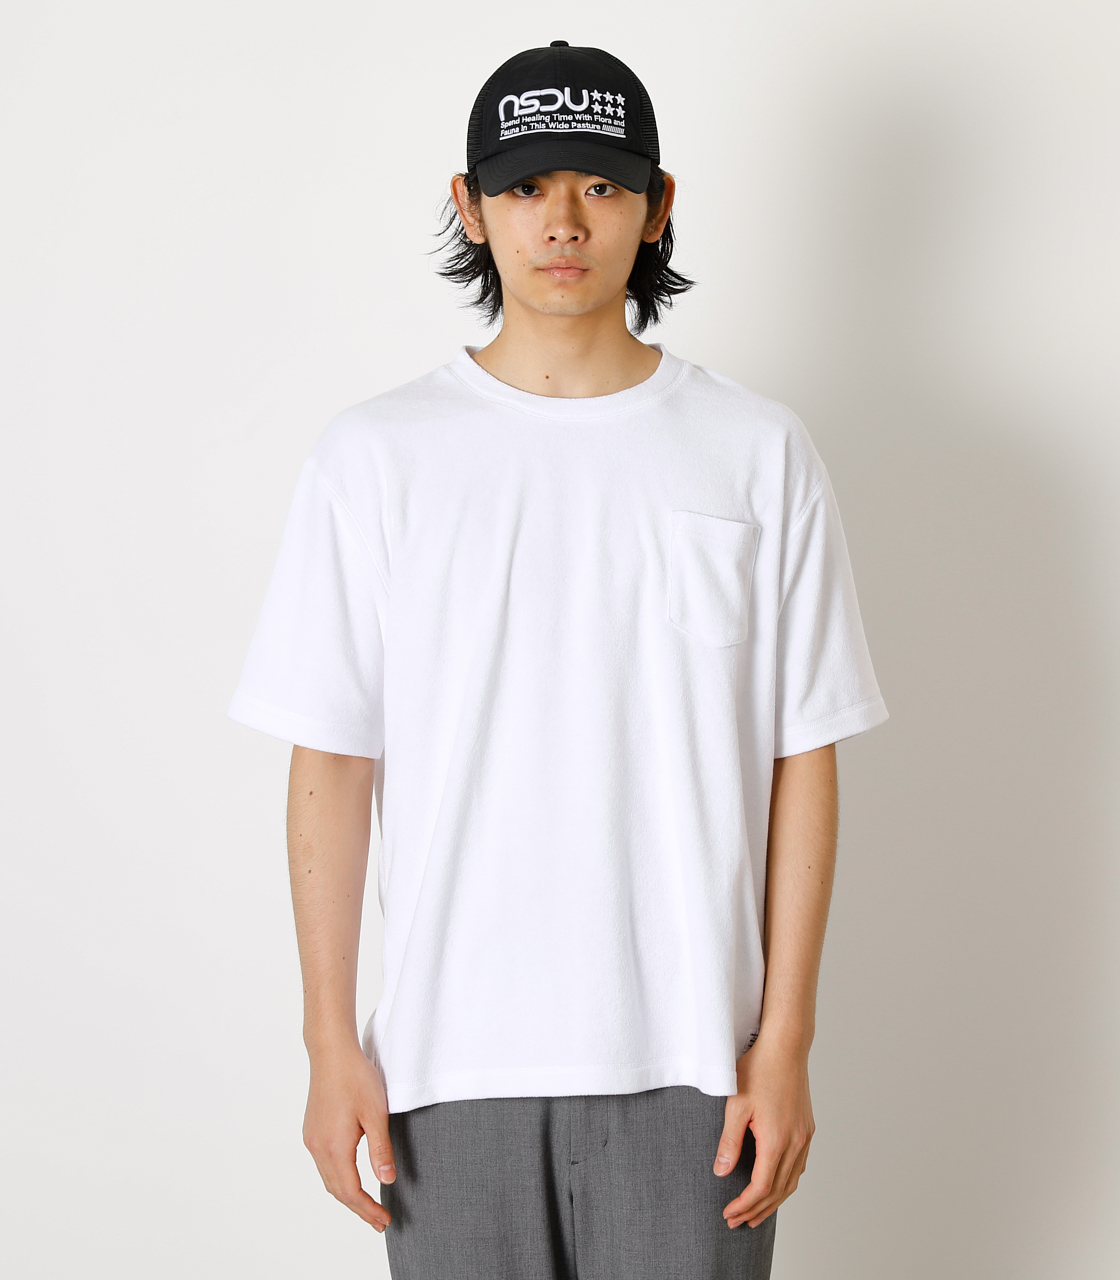 LOOSE PILE TOPS/ルーズパイルトップス 詳細画像 WHT 4